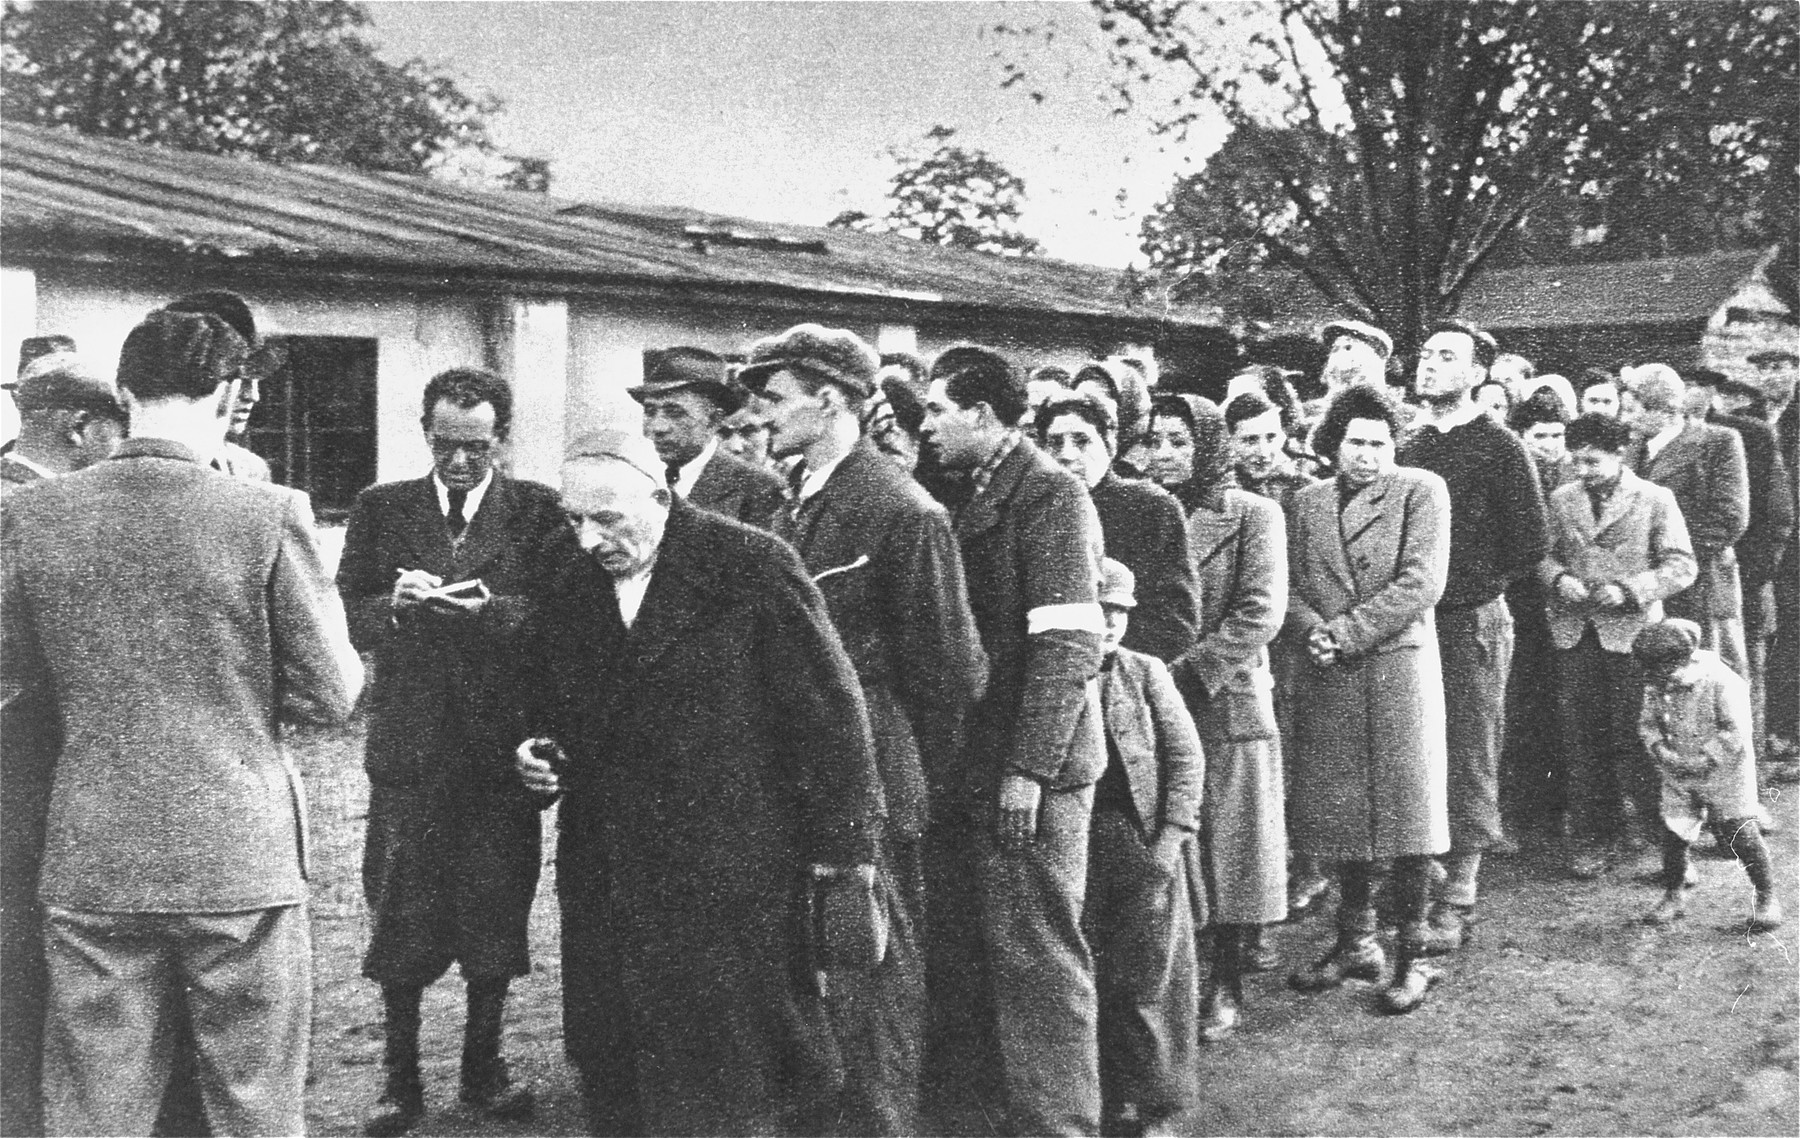 Slovak officials check off the names of Jews who are about to be deported at an assembly point in Zilina, Slovakia.